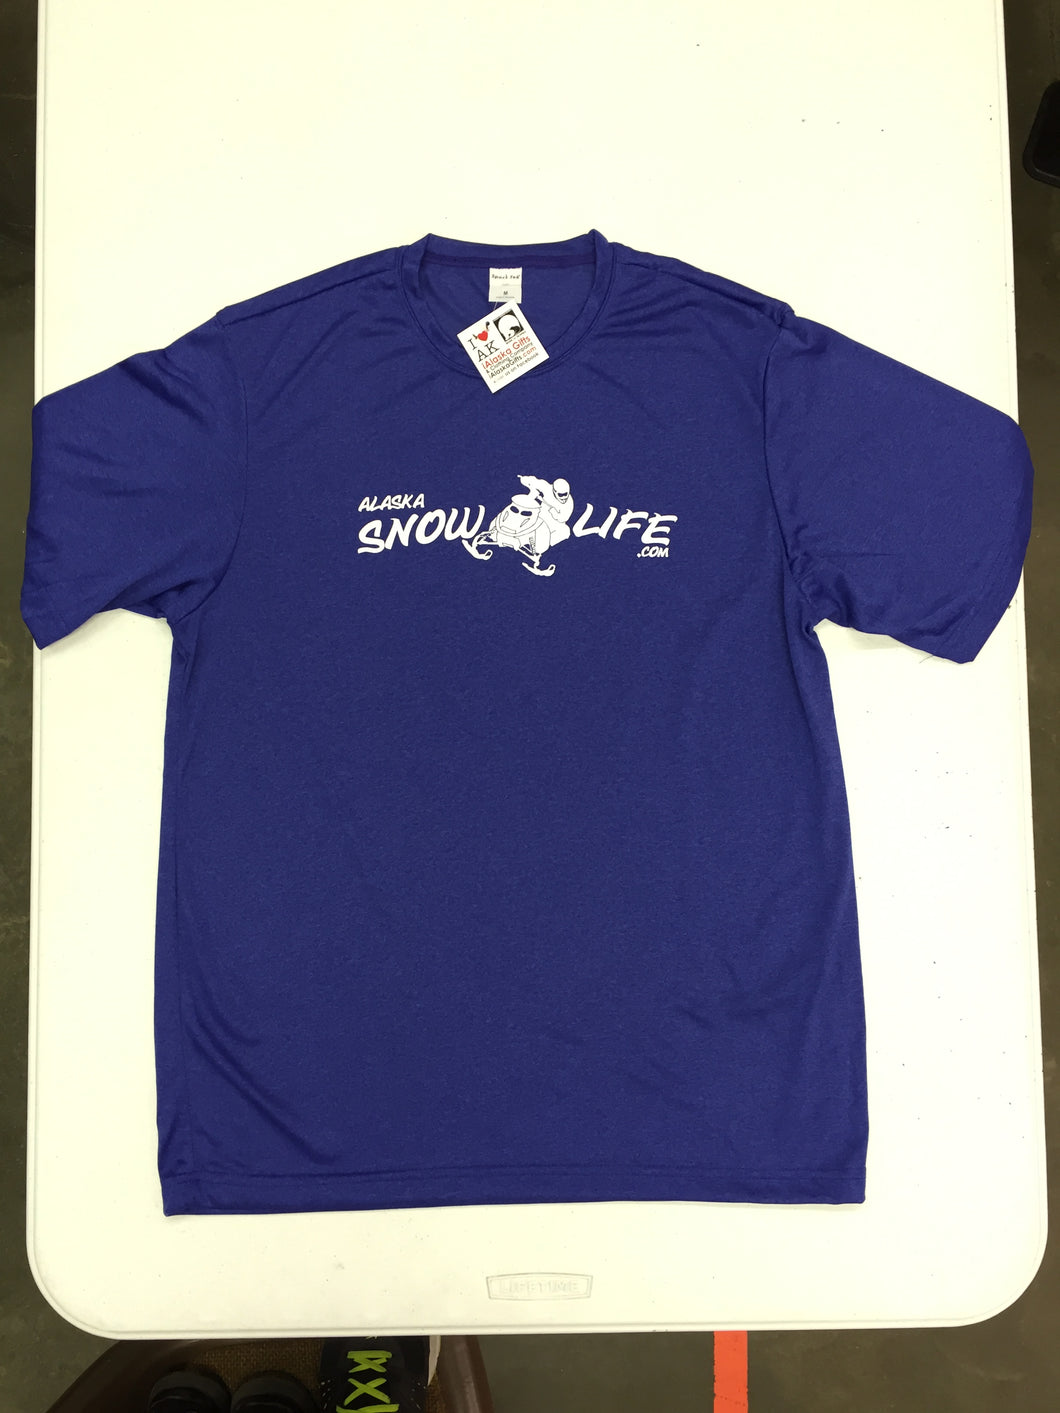 Alaska Snow Life - Snowmachine - Performance T-Shirt (CLEARANCE)